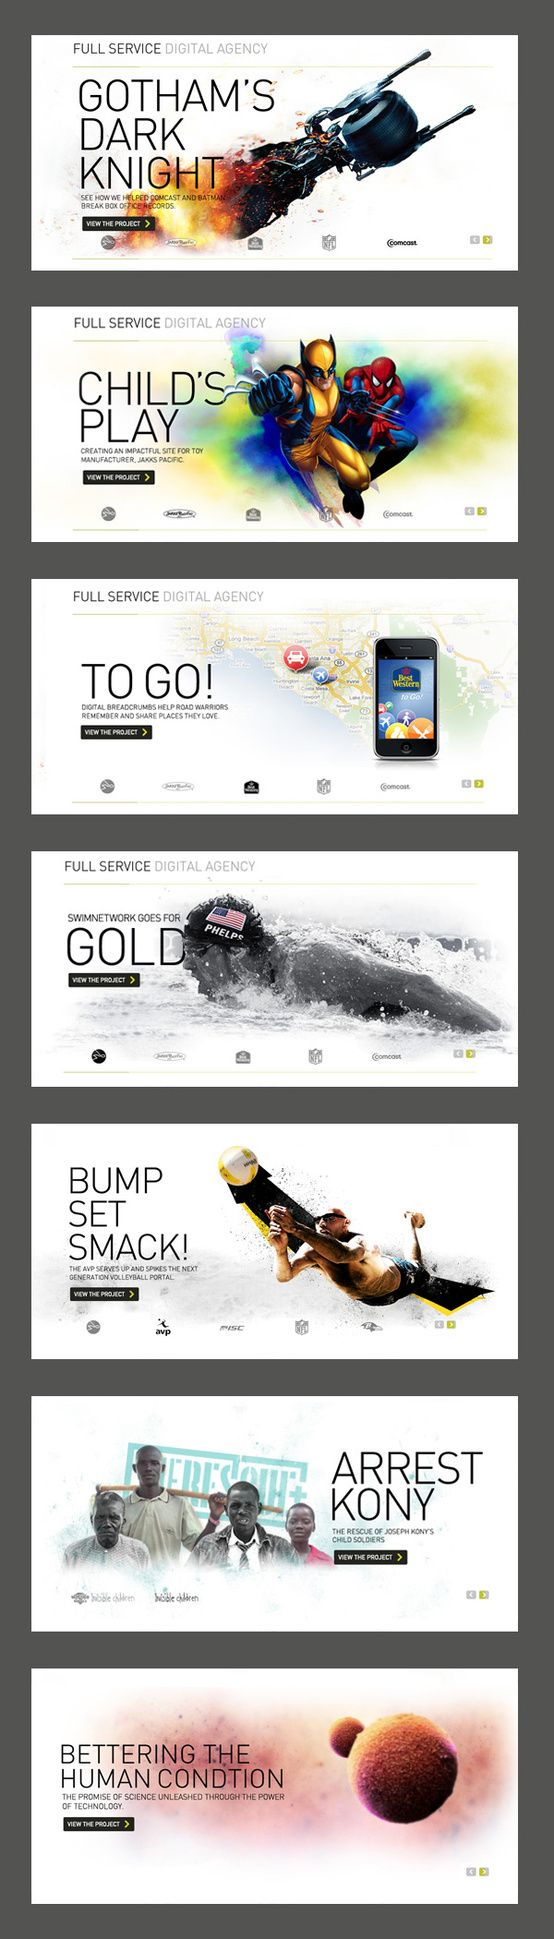 Full Service Digital Agency ~ #WebDesign #GraphicDesign #Inspiration more on…